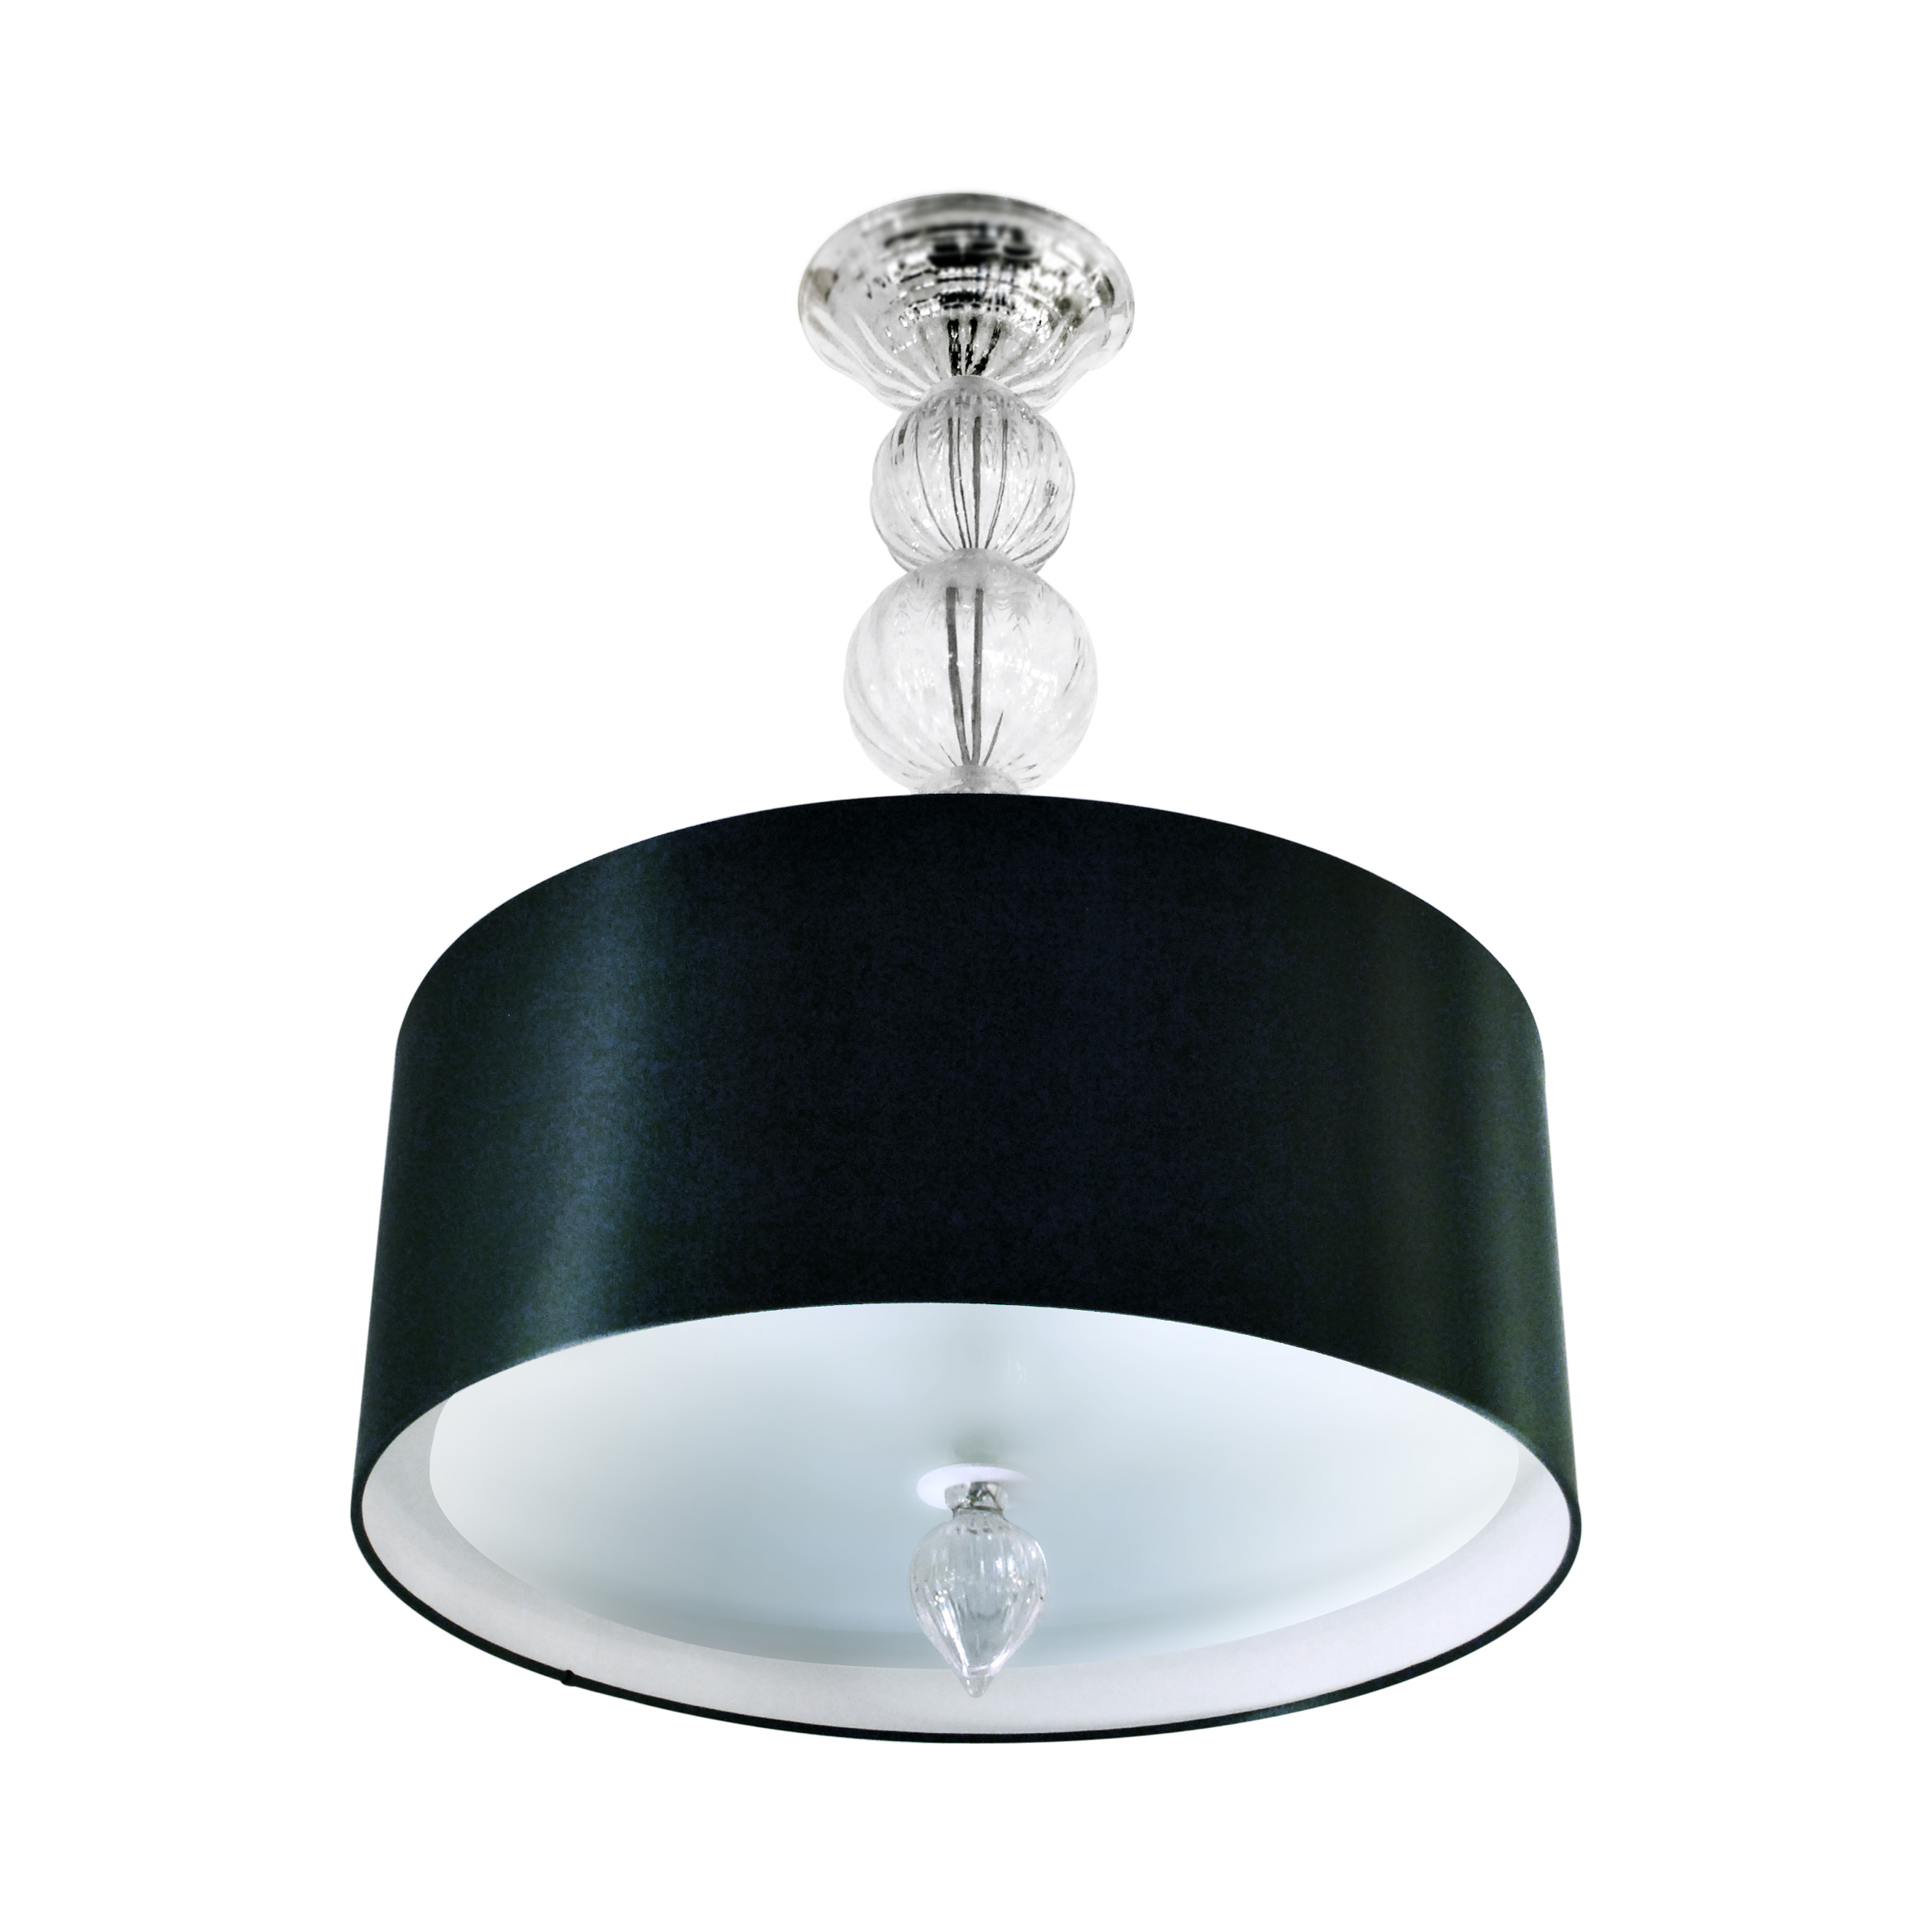 ceilings fixture by cover light links index vibia ceiling square